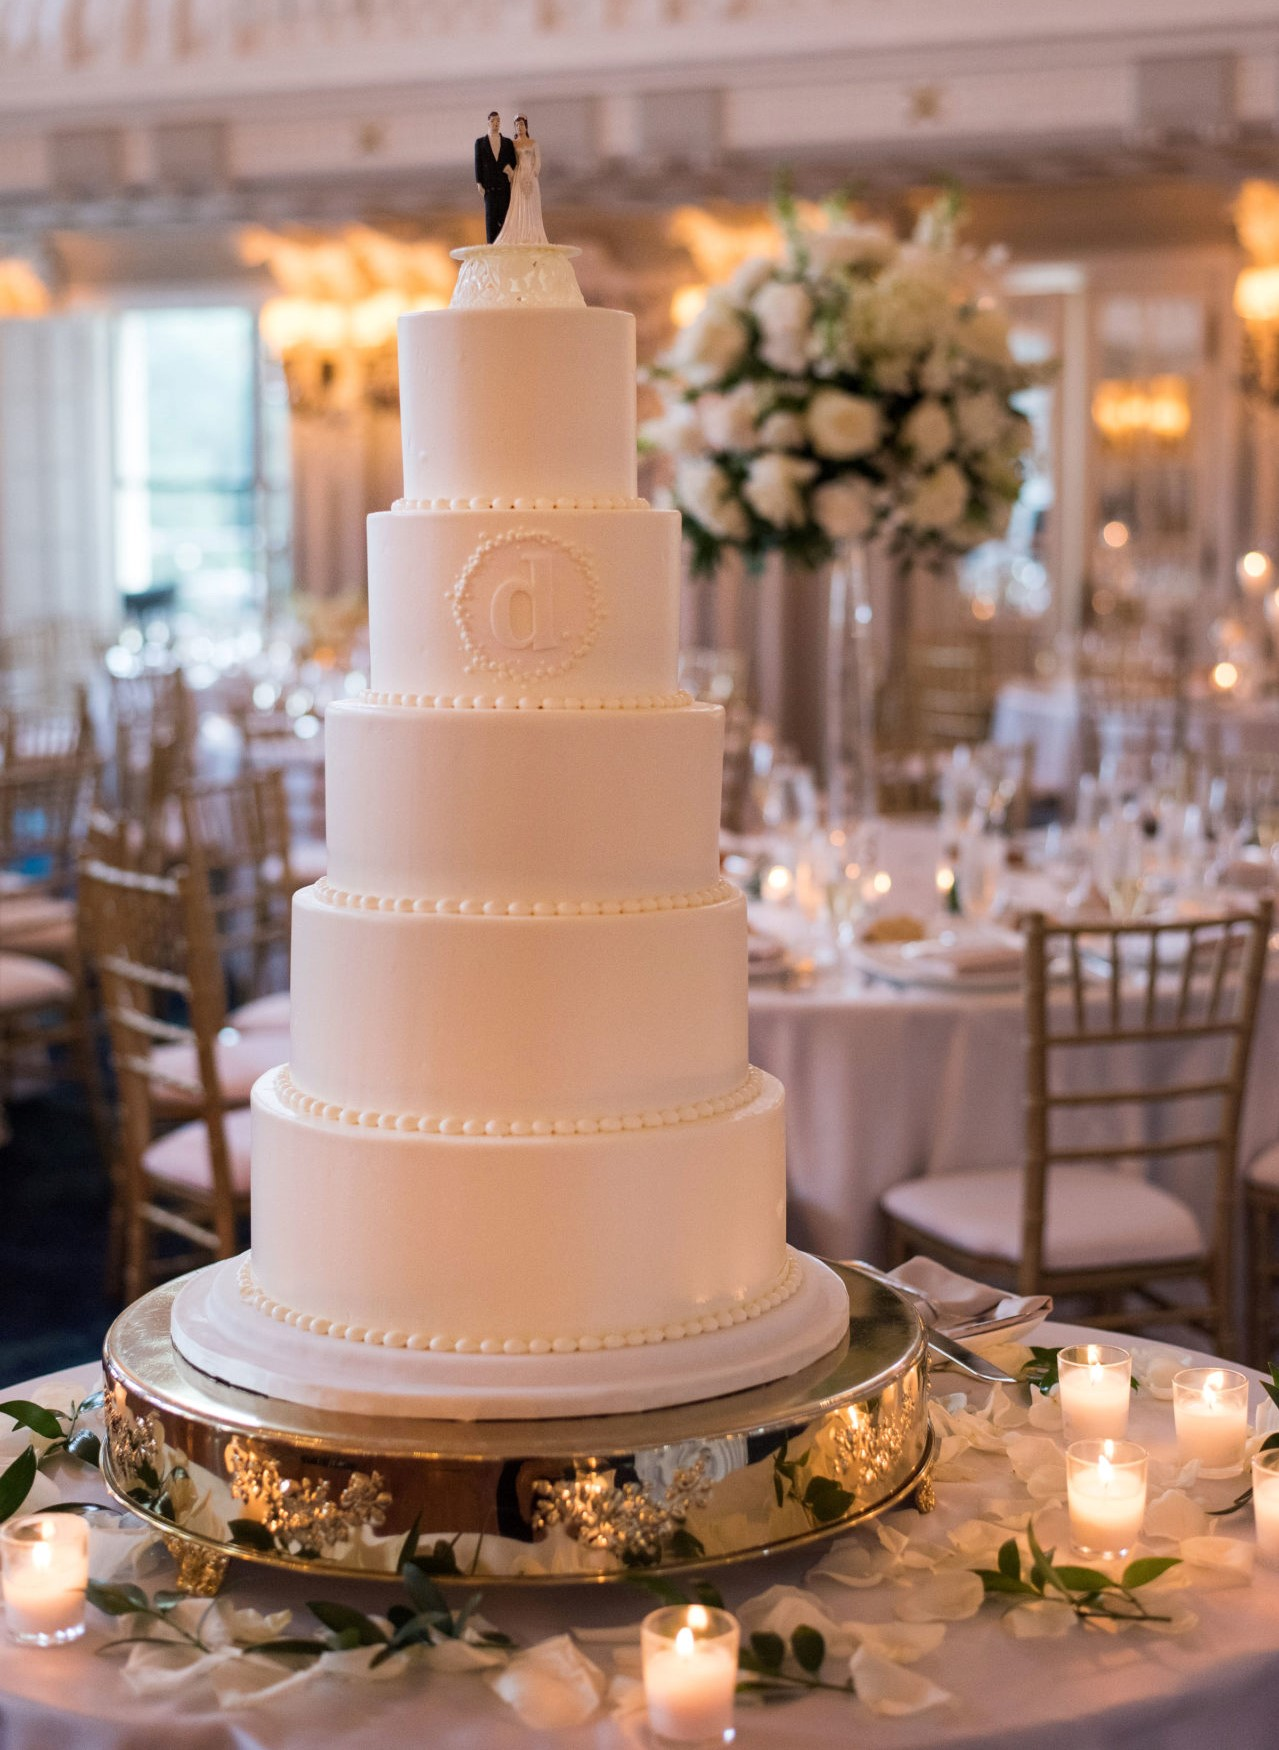 5 Tier White Wedding Cake Columbia, SC